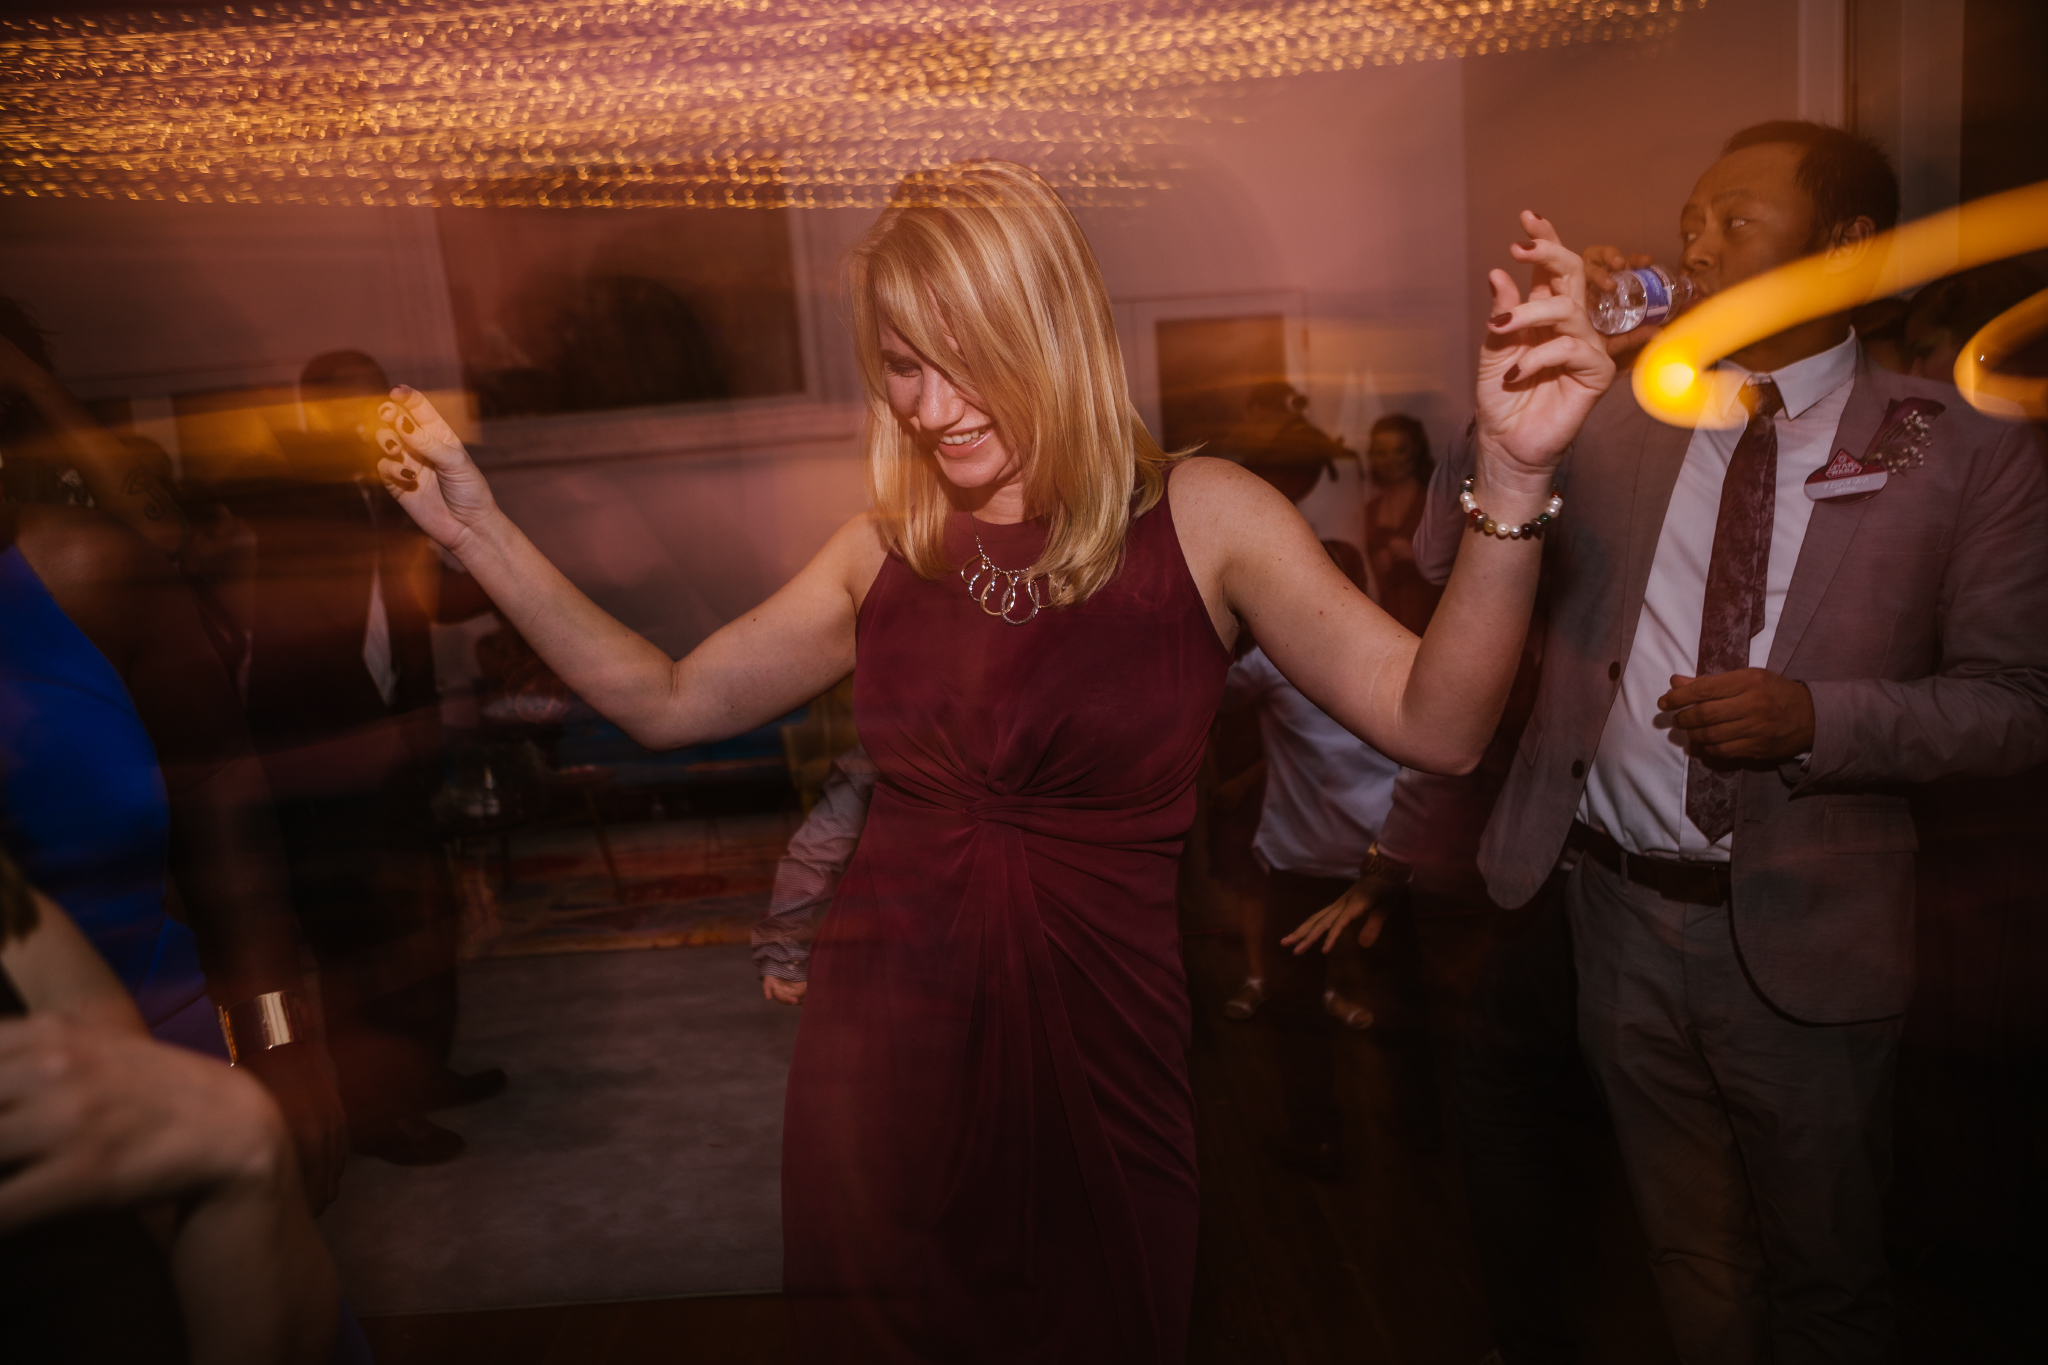 san diego wedding   photographer | long exposure shot of woman in purple dancing